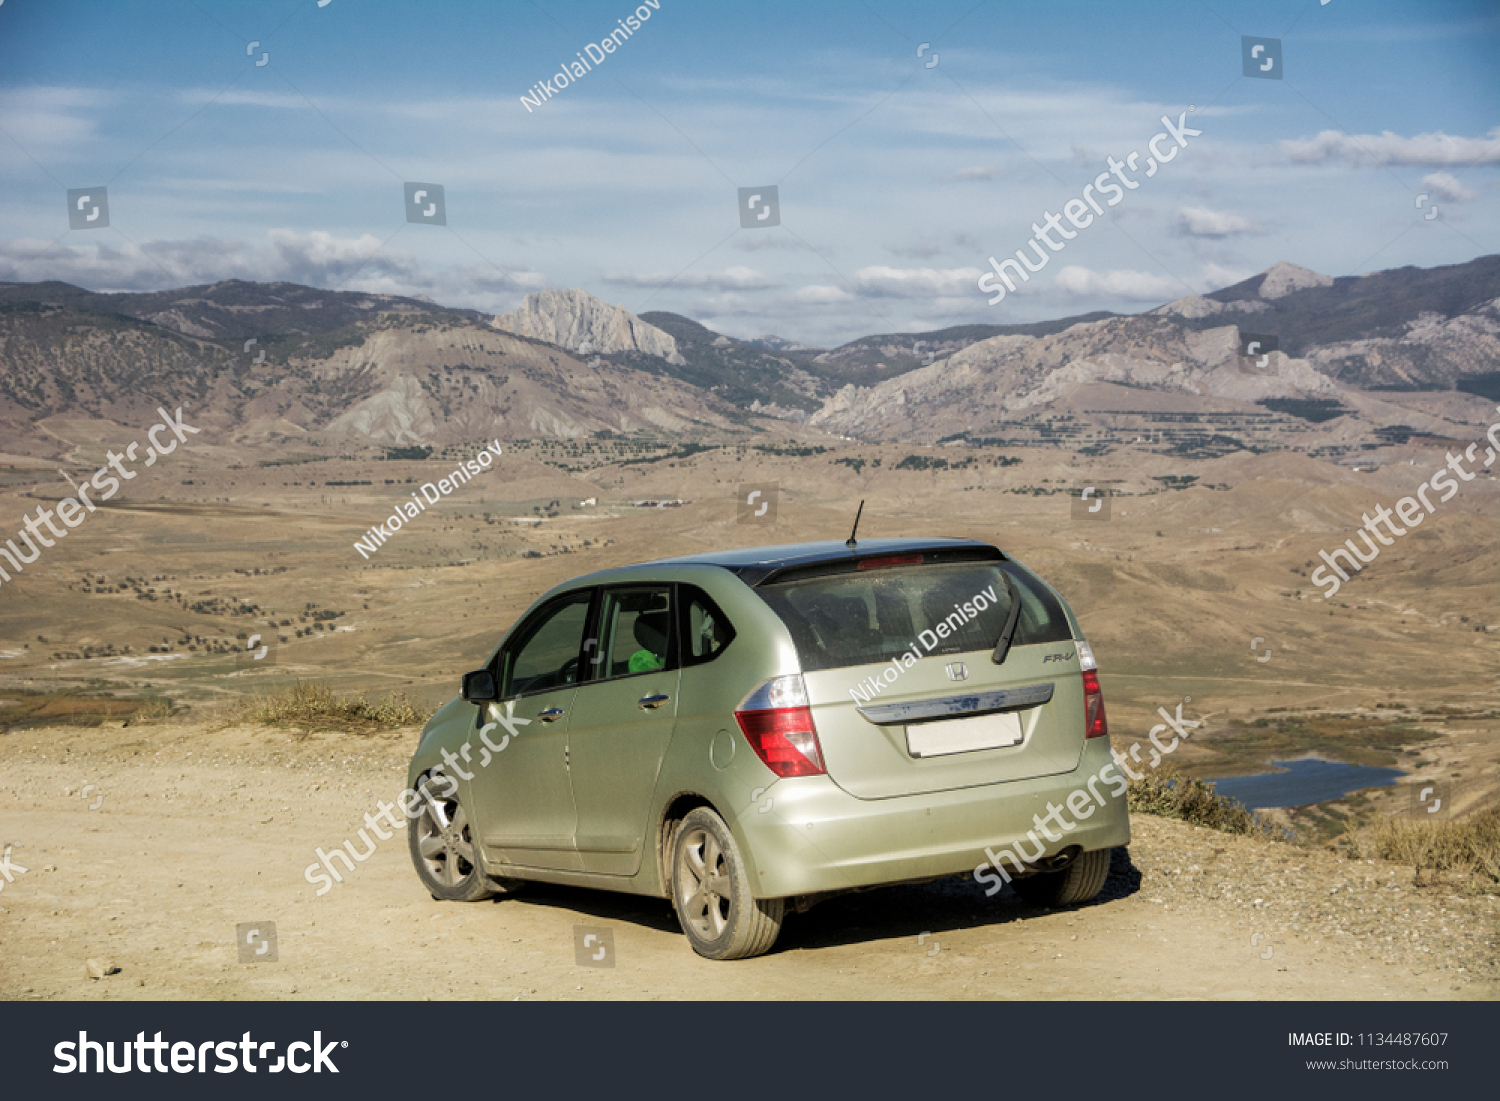 Honda FR-V. The car is parked on a mountain Meganom near wind turbines. Republic of Crimea. October 30, 2015. #1134487607